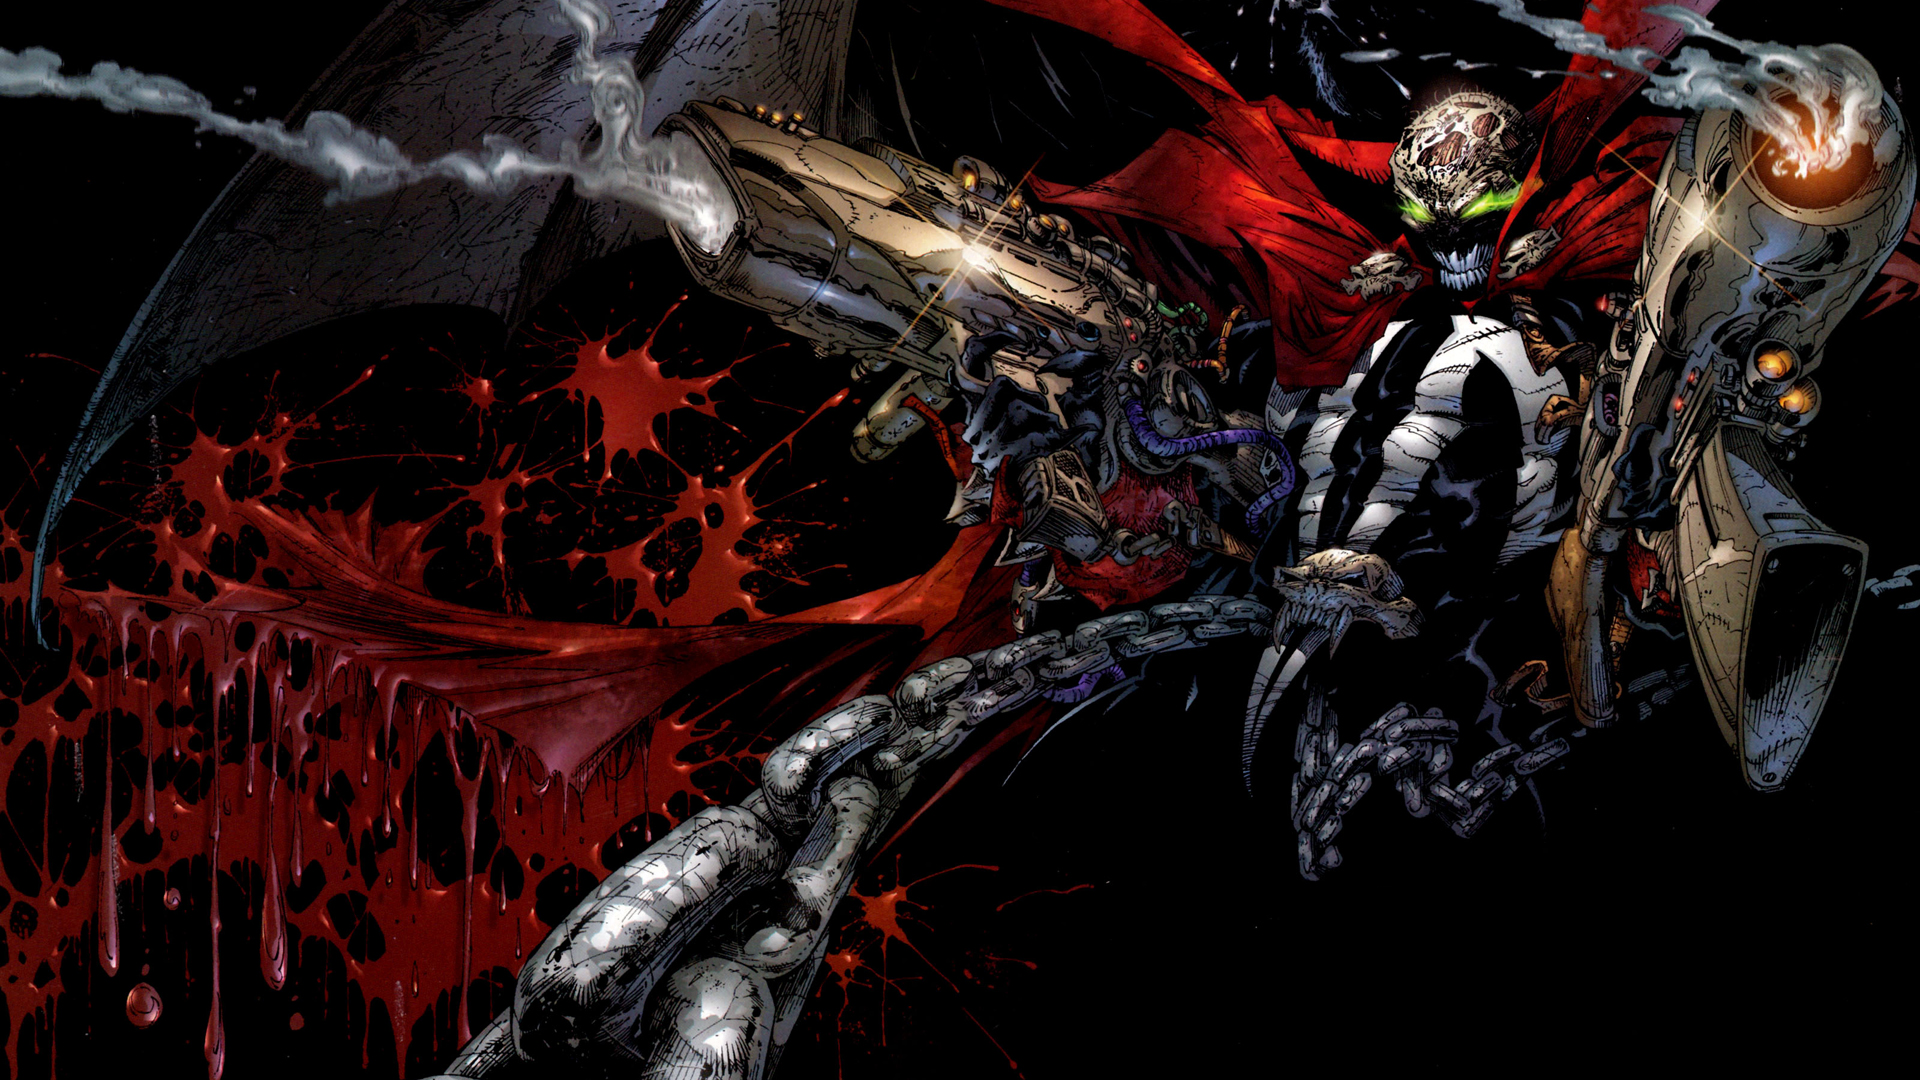 Spawn Wallpapers 1920x1080 Full Hd 1080p Desktop Backgrounds